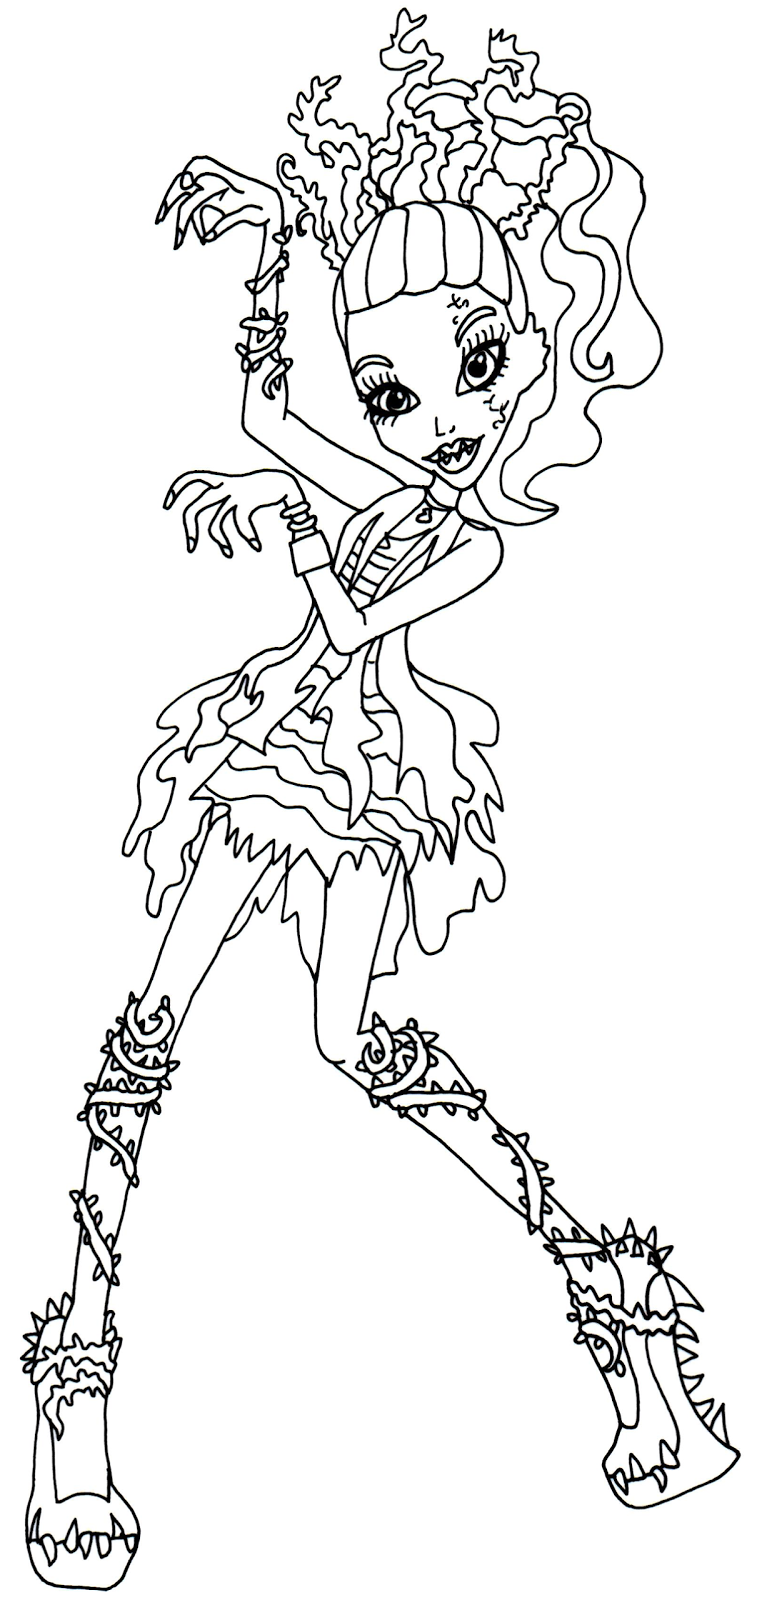 Venus Mcflytrap Zombie Shake Dance Monster High Coloring Page Png 762 1600 Coloring Pages Cartoon Coloring Pages Dance Coloring Pages